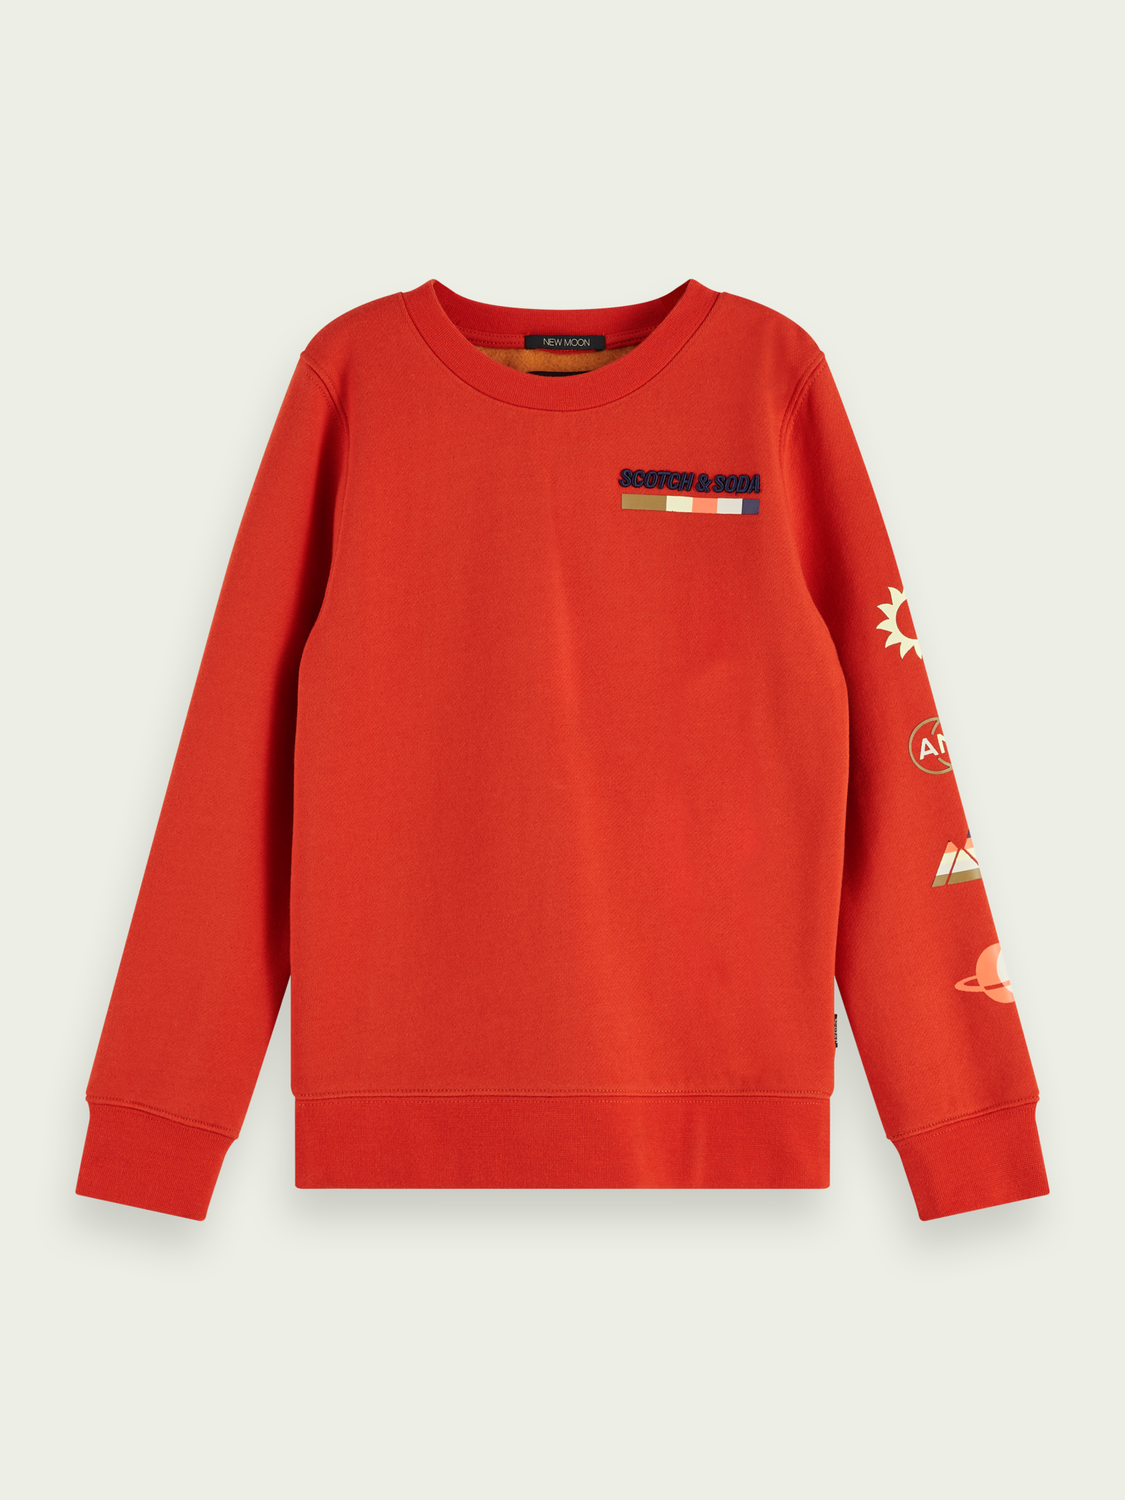 Kids Two-tone crewneck sweatshirt